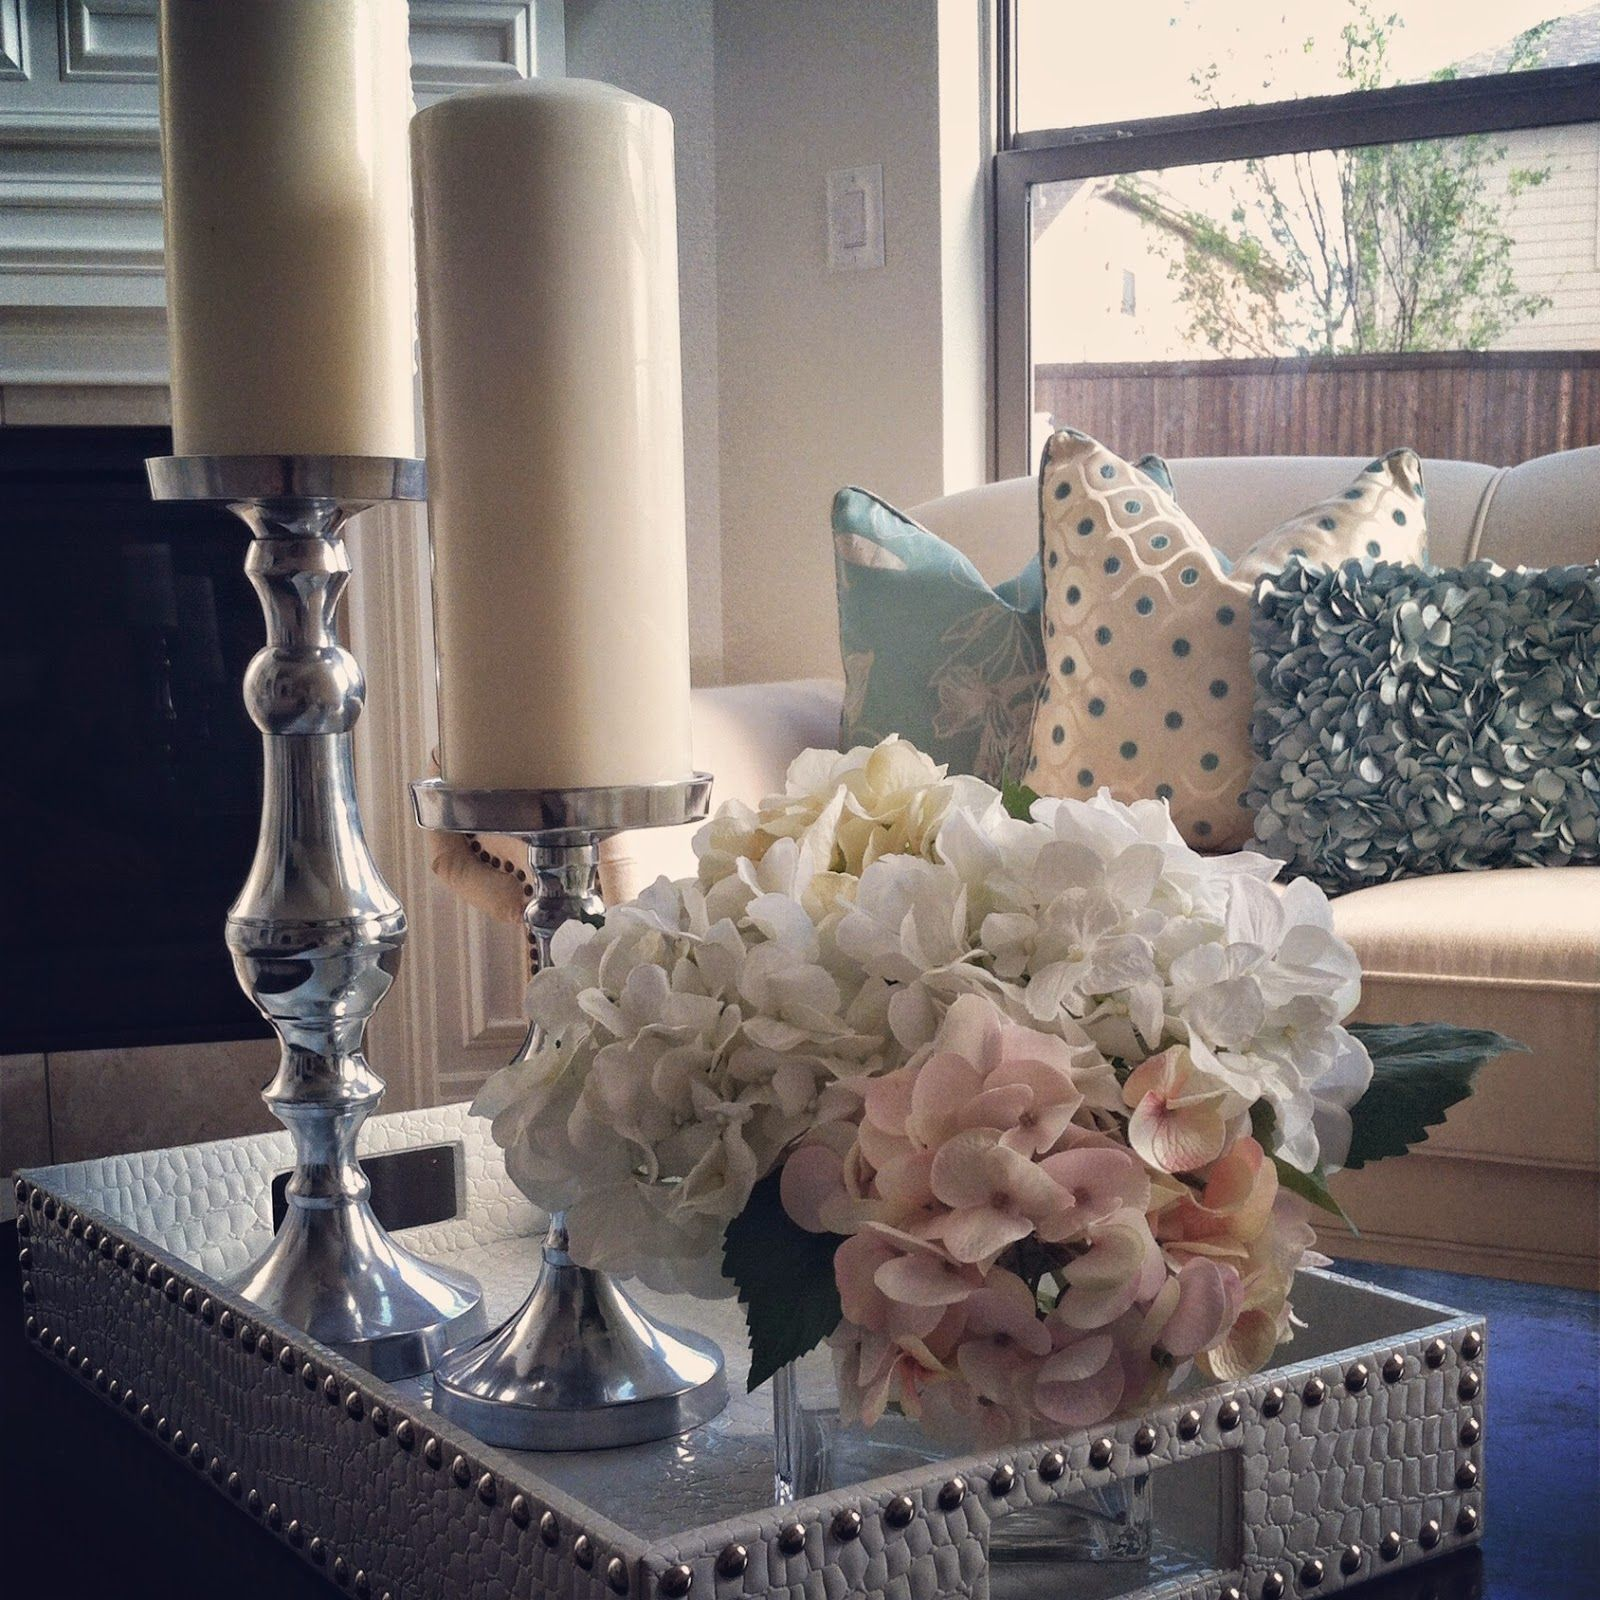 Nissa lynn interiors my coffee table decor in the morning sunlight nissalynninteriors